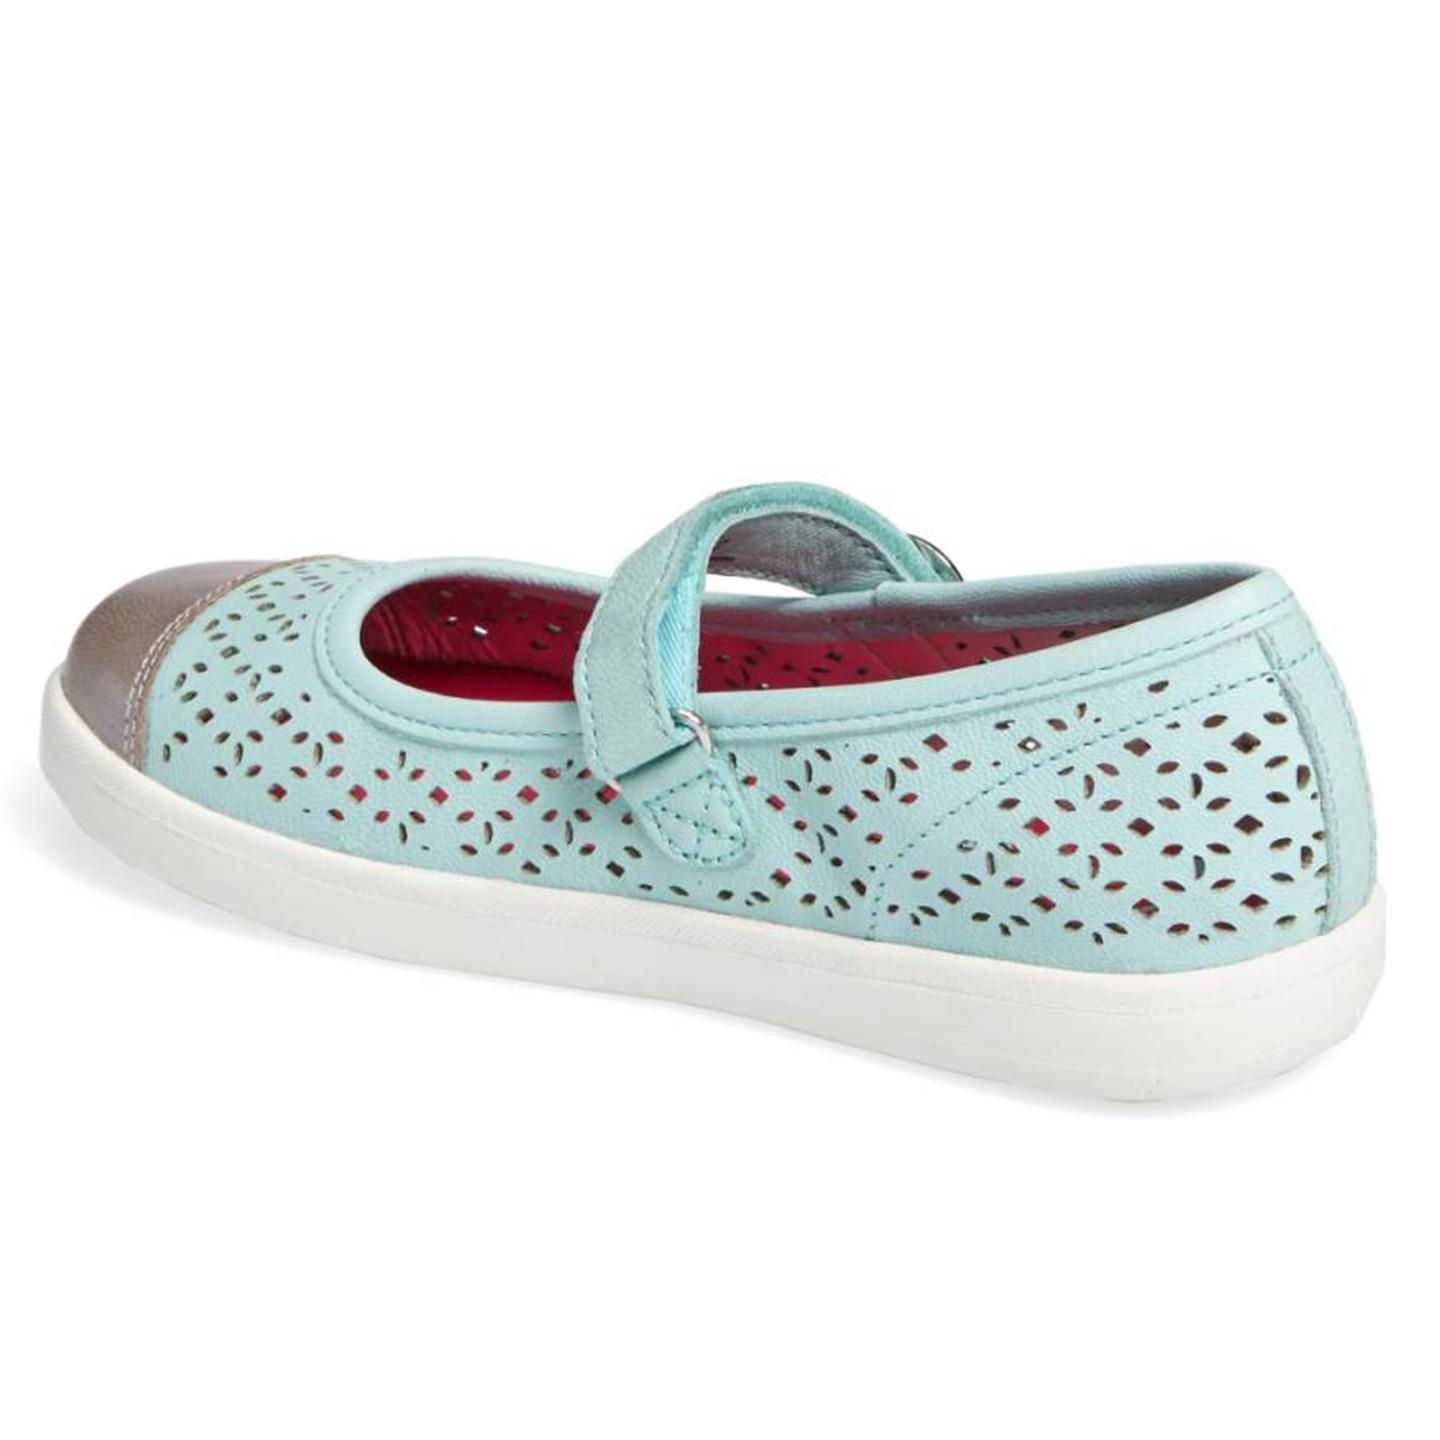 Stride Rite Poppy Mary 11 Jane Shoe (Little Kid), Turquoise, 11 Mary M 804799